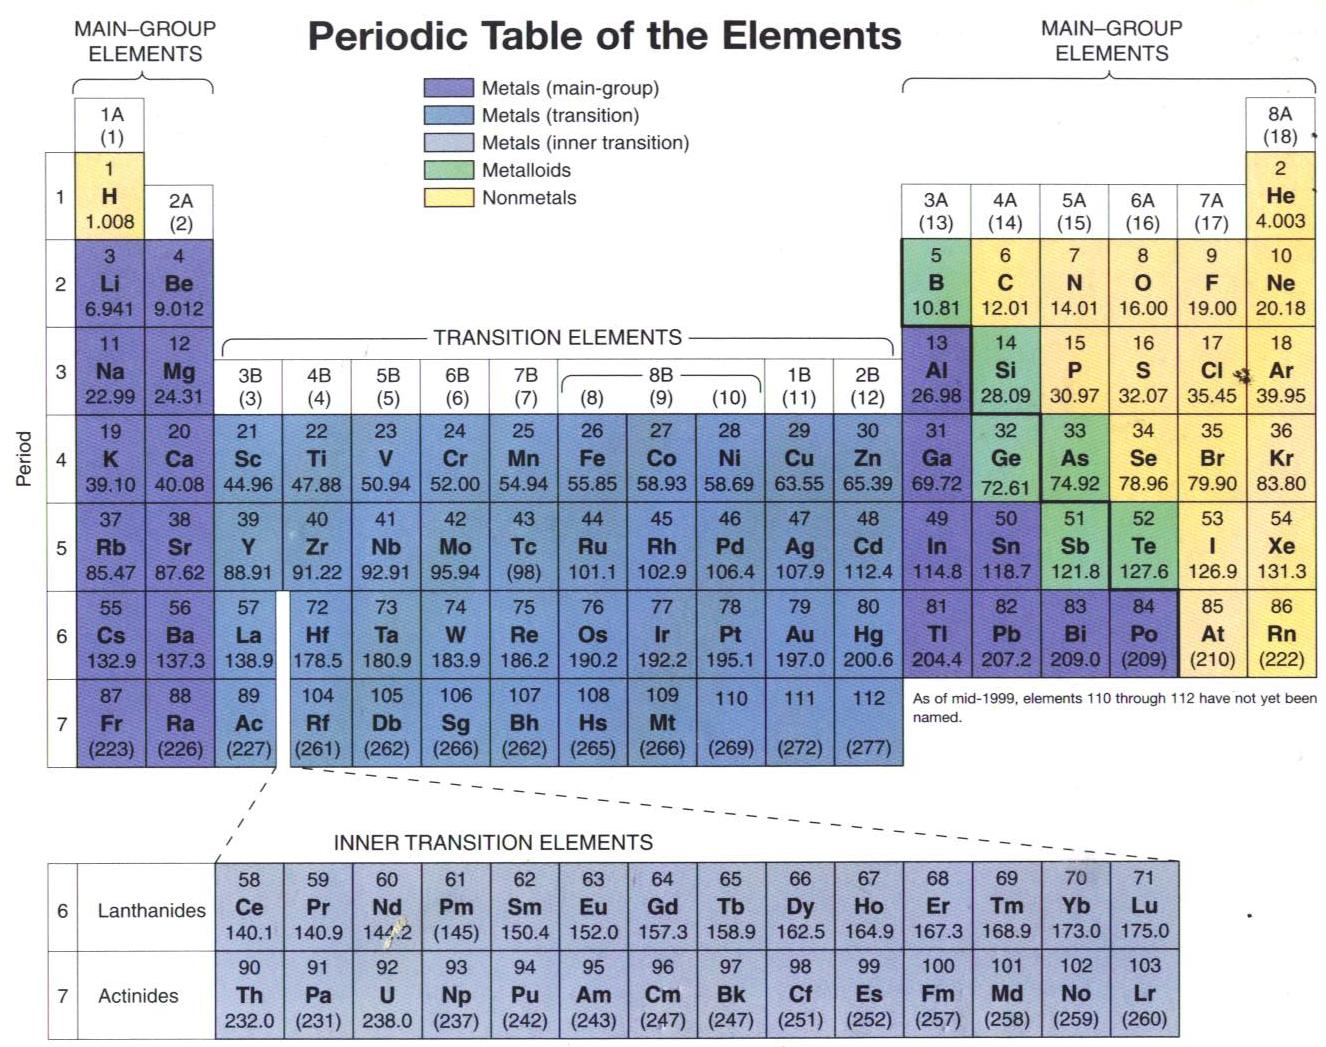 Al chemist ungu periodic table of the elements introduction to the periodic table people have known about elements like carbon and gold since ancient time the elements couldnt be changed using any gamestrikefo Image collections